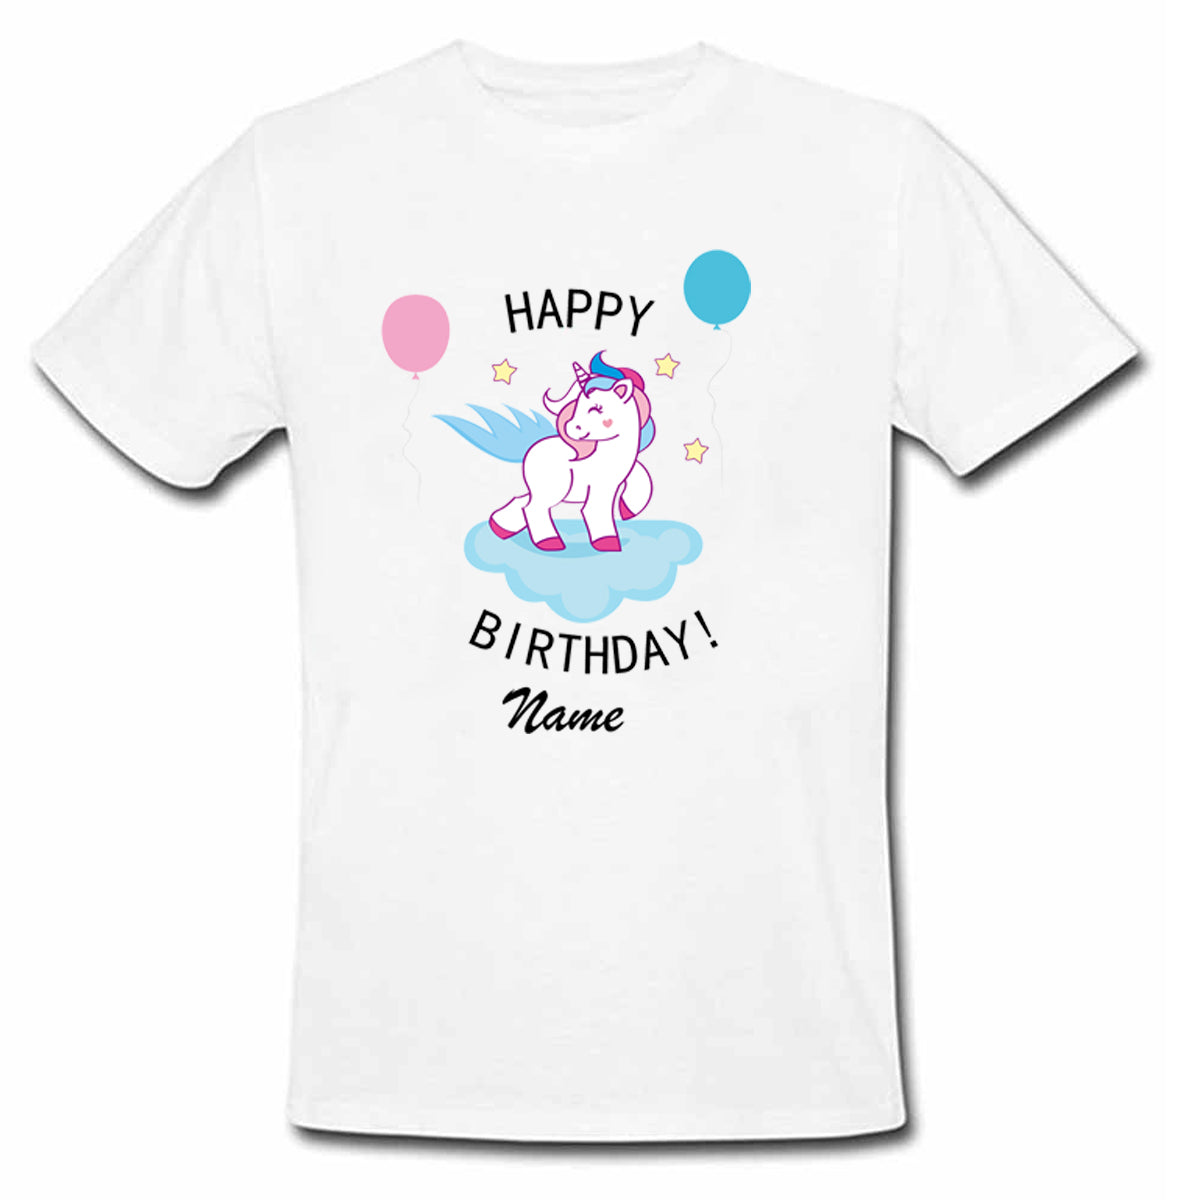 Sprinklecart Personalized Happy Birthday Printed Unicorn Poly-Cotton T Shirt for Kids (White)